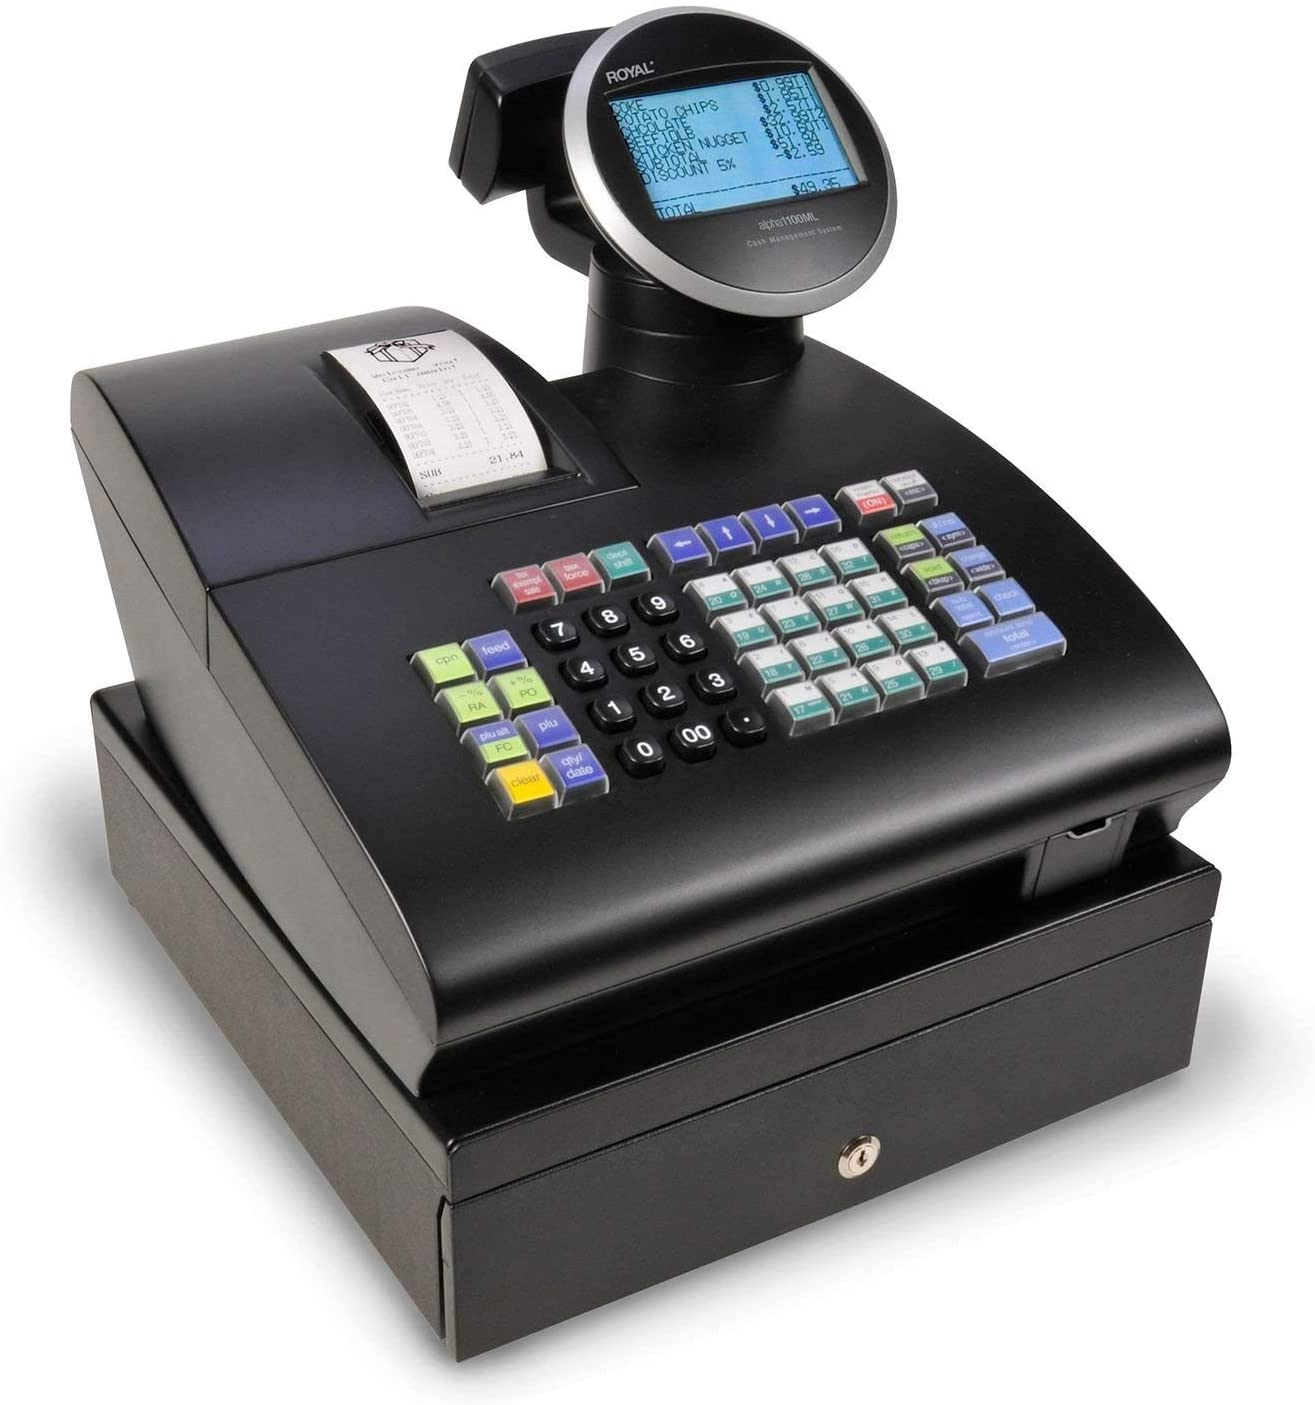 ROYAL Consumer 39285K Alpha 1100ML Cash Register